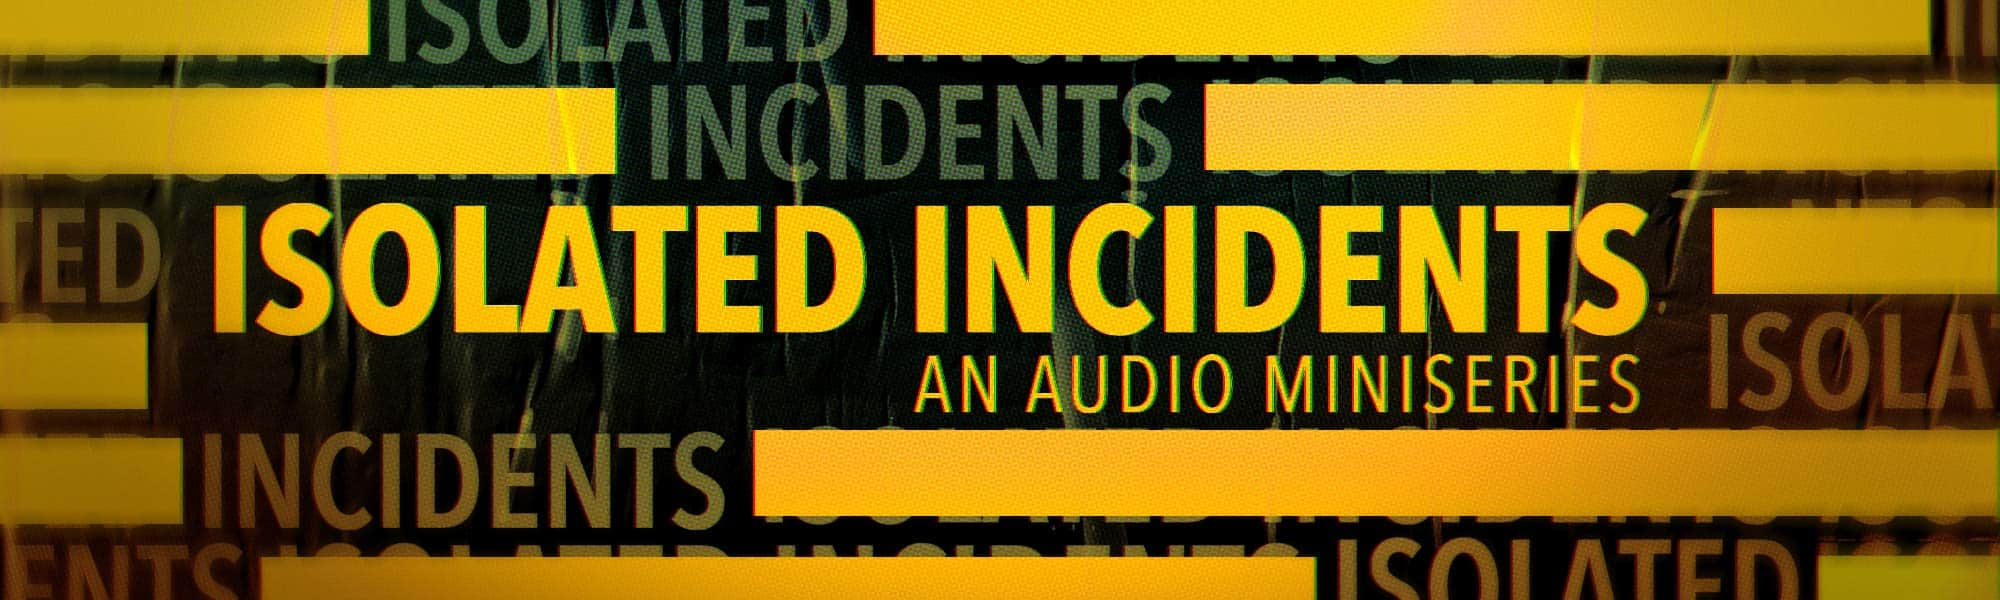 Isolated Incidents Banner